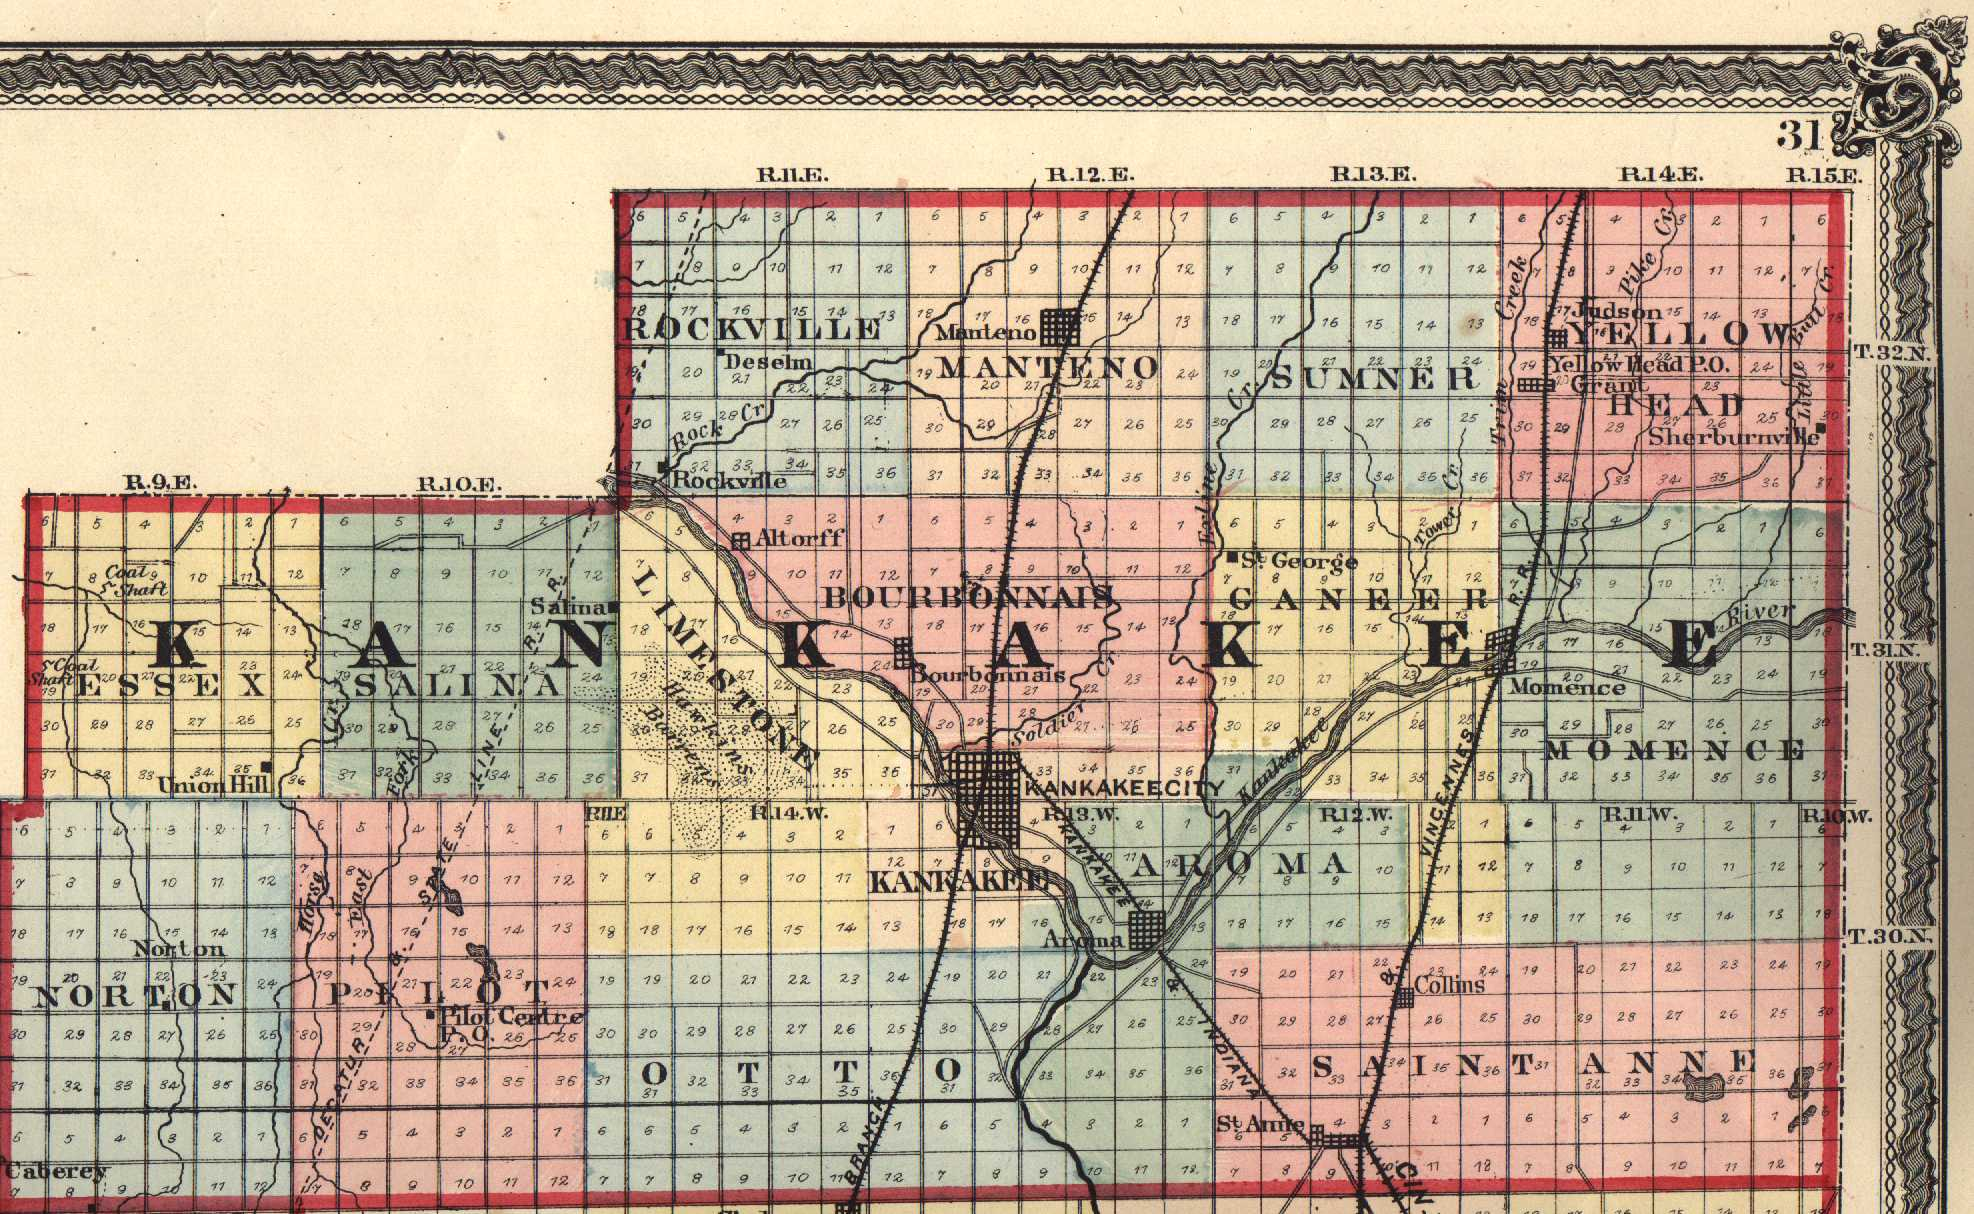 Kankakee County Illinois Maps And Gazetteers